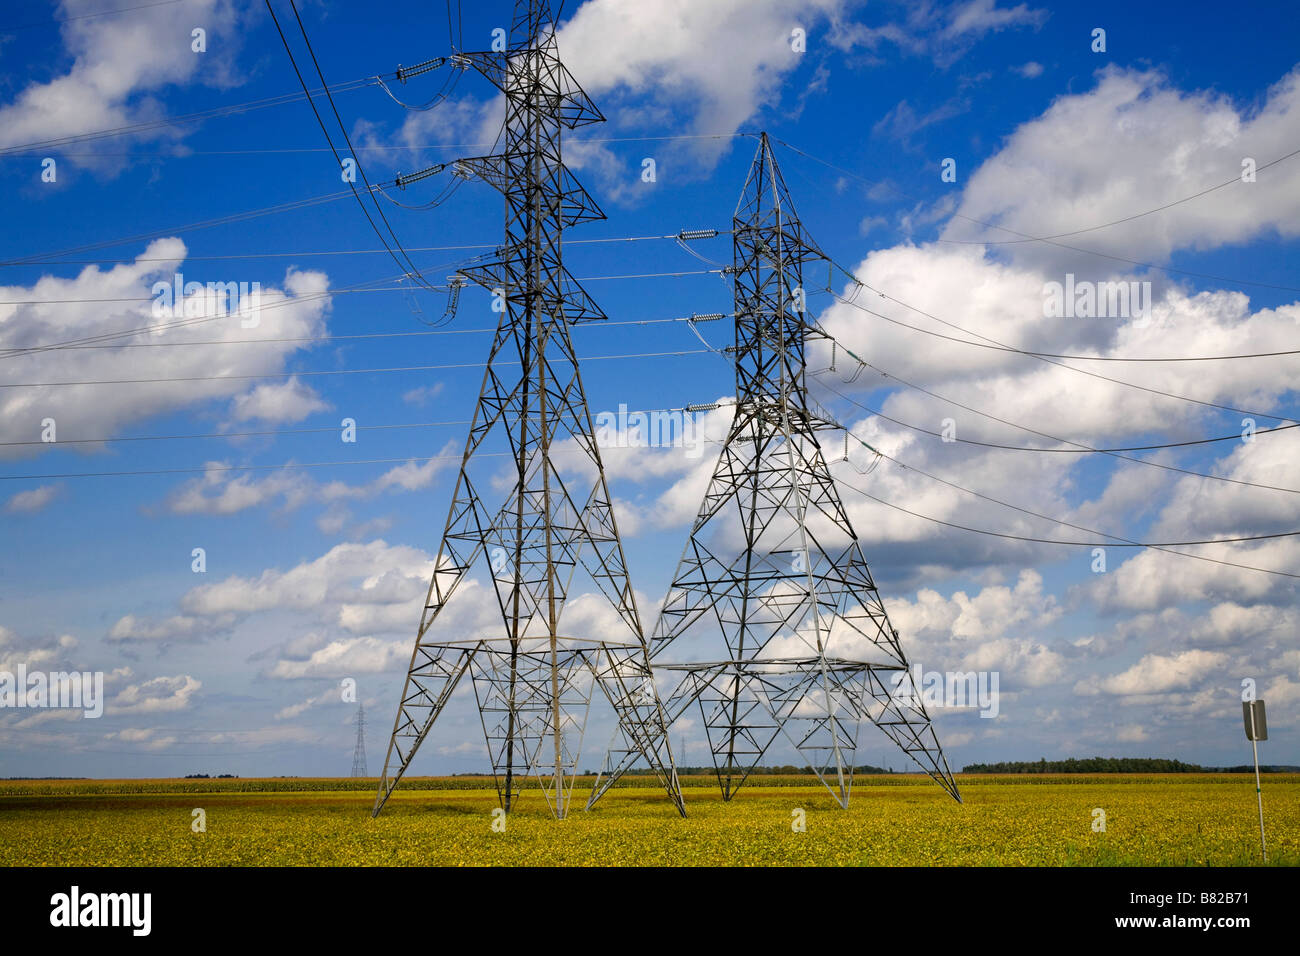 Hydro electric towers over a soya bean field - Stock Image